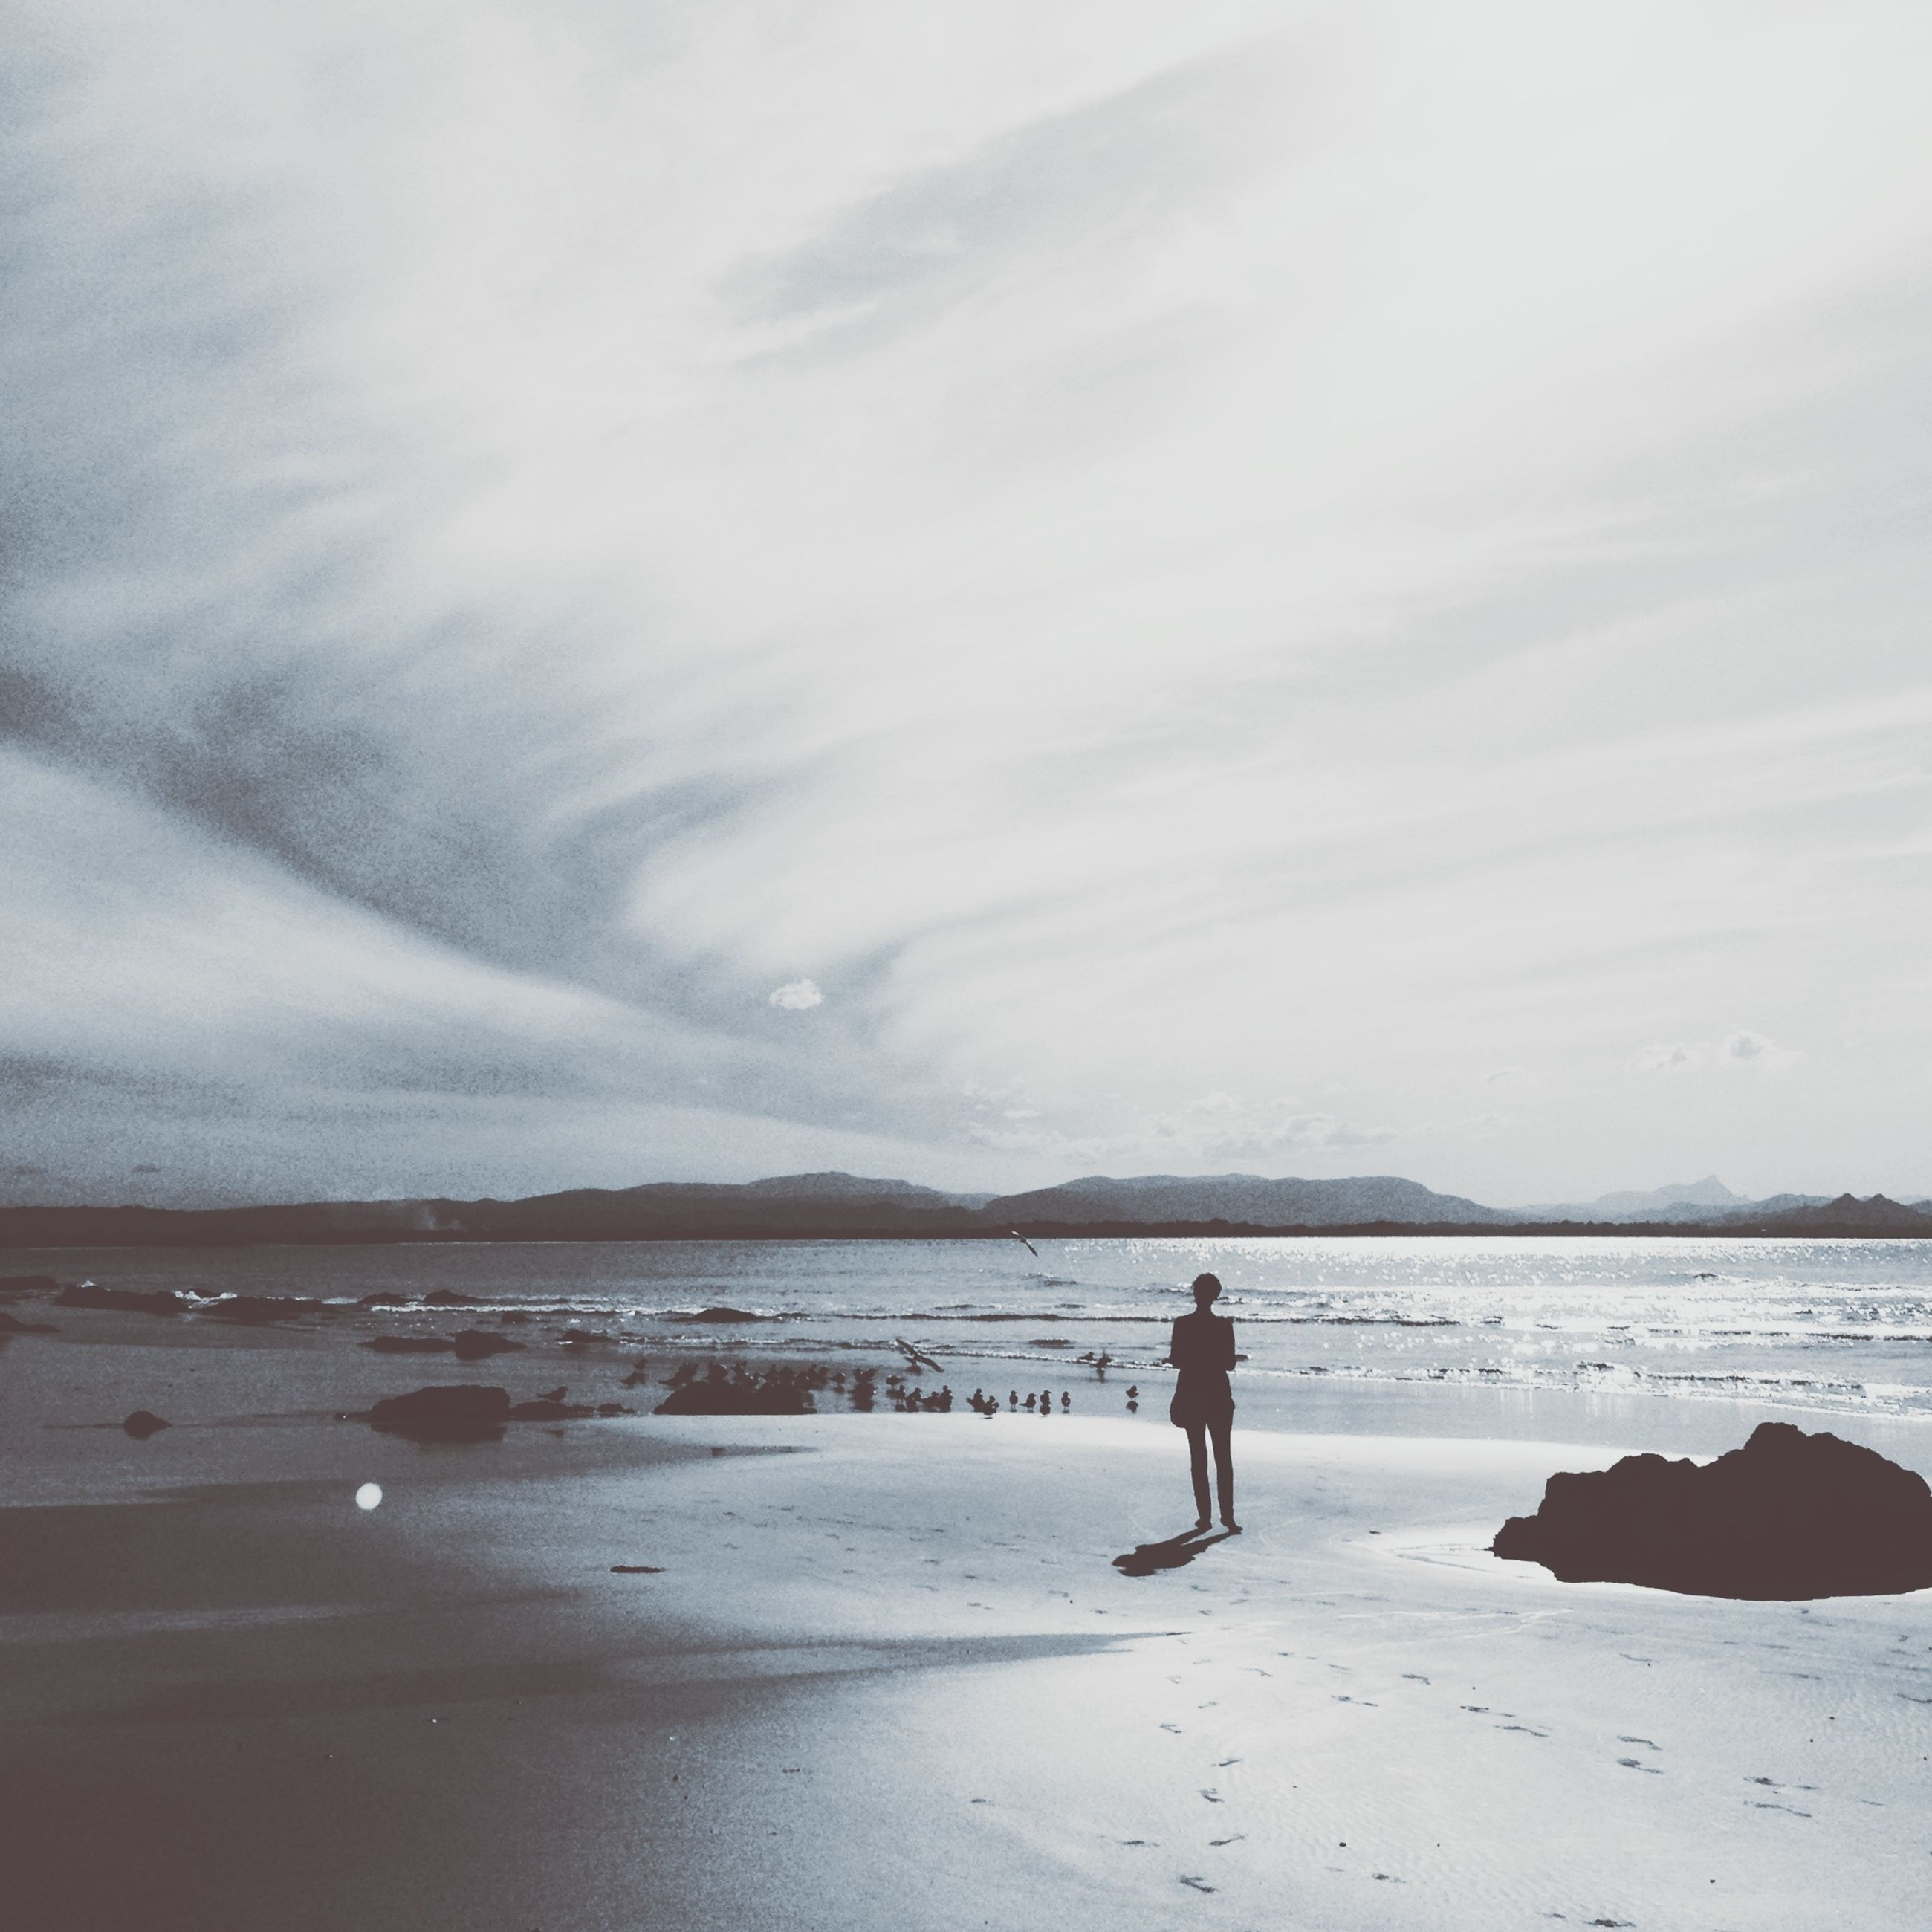 water, sea, beach, sky, shore, tranquil scene, tranquility, scenics, rear view, nature, beauty in nature, standing, lifestyles, sand, leisure activity, cloud - sky, men, idyllic